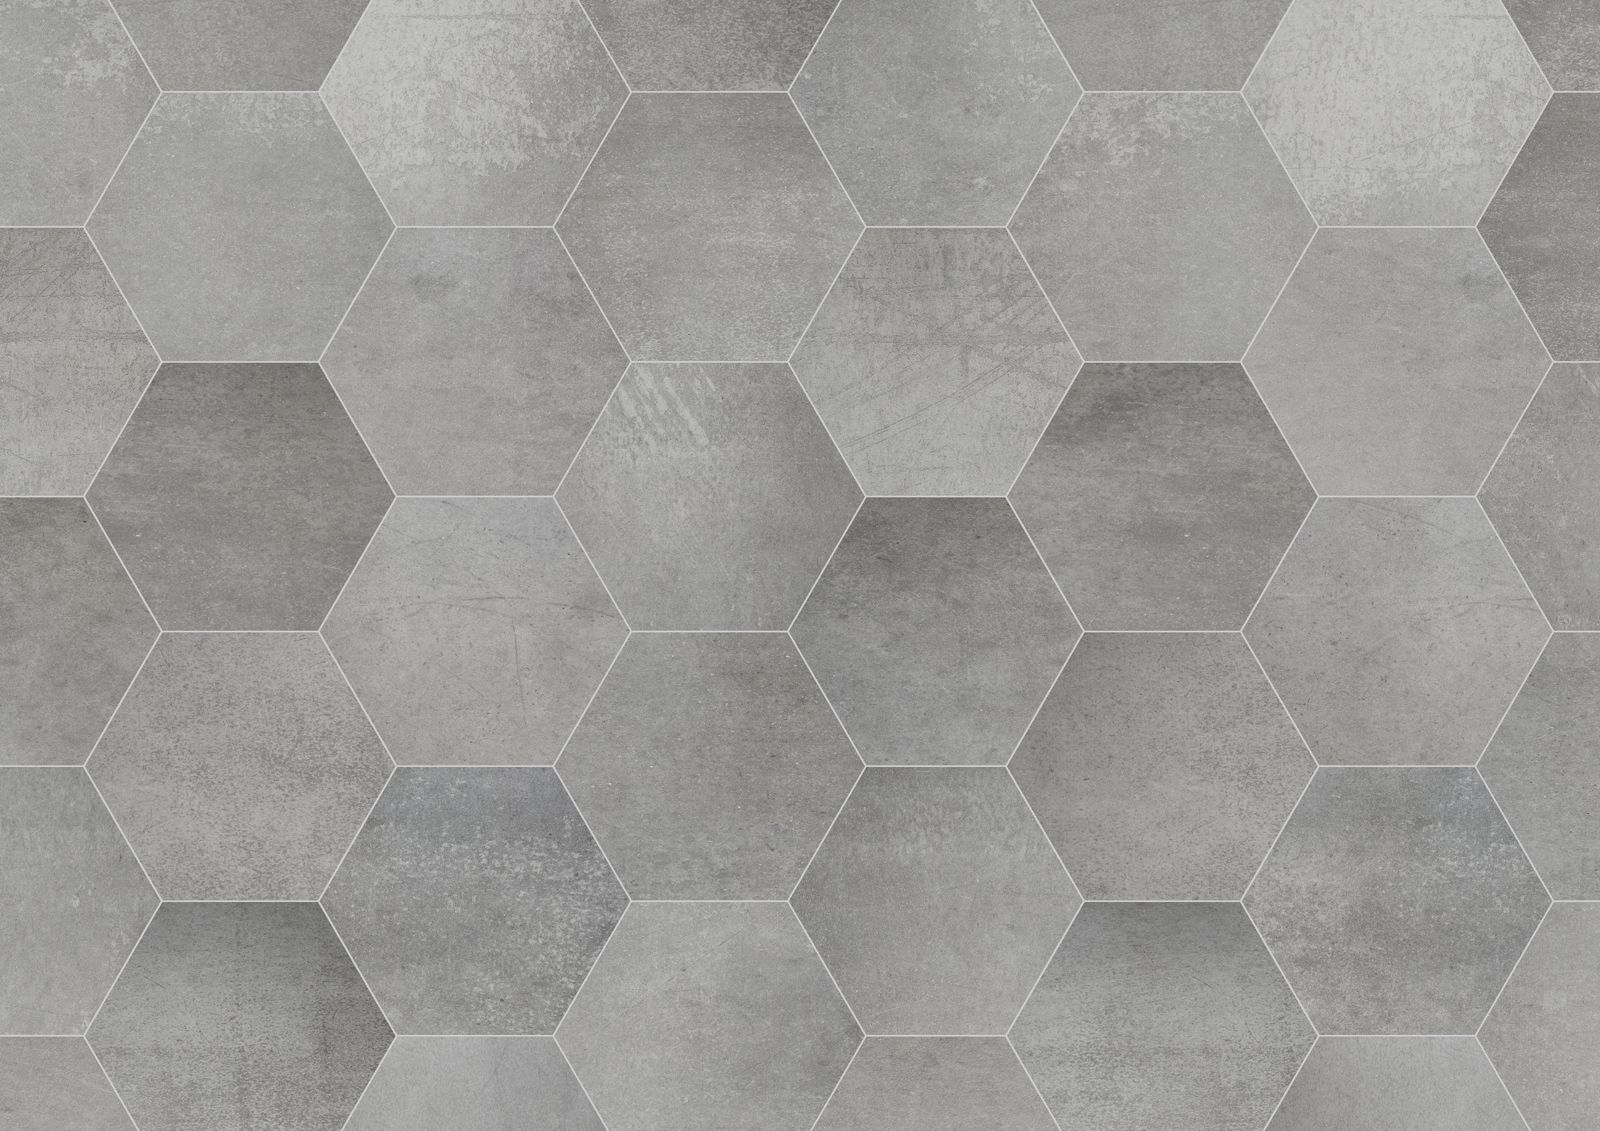 hexagon concrete tile - Google Search & hexagon concrete tile - Google Search | ПЛИТКА | Pinterest ...